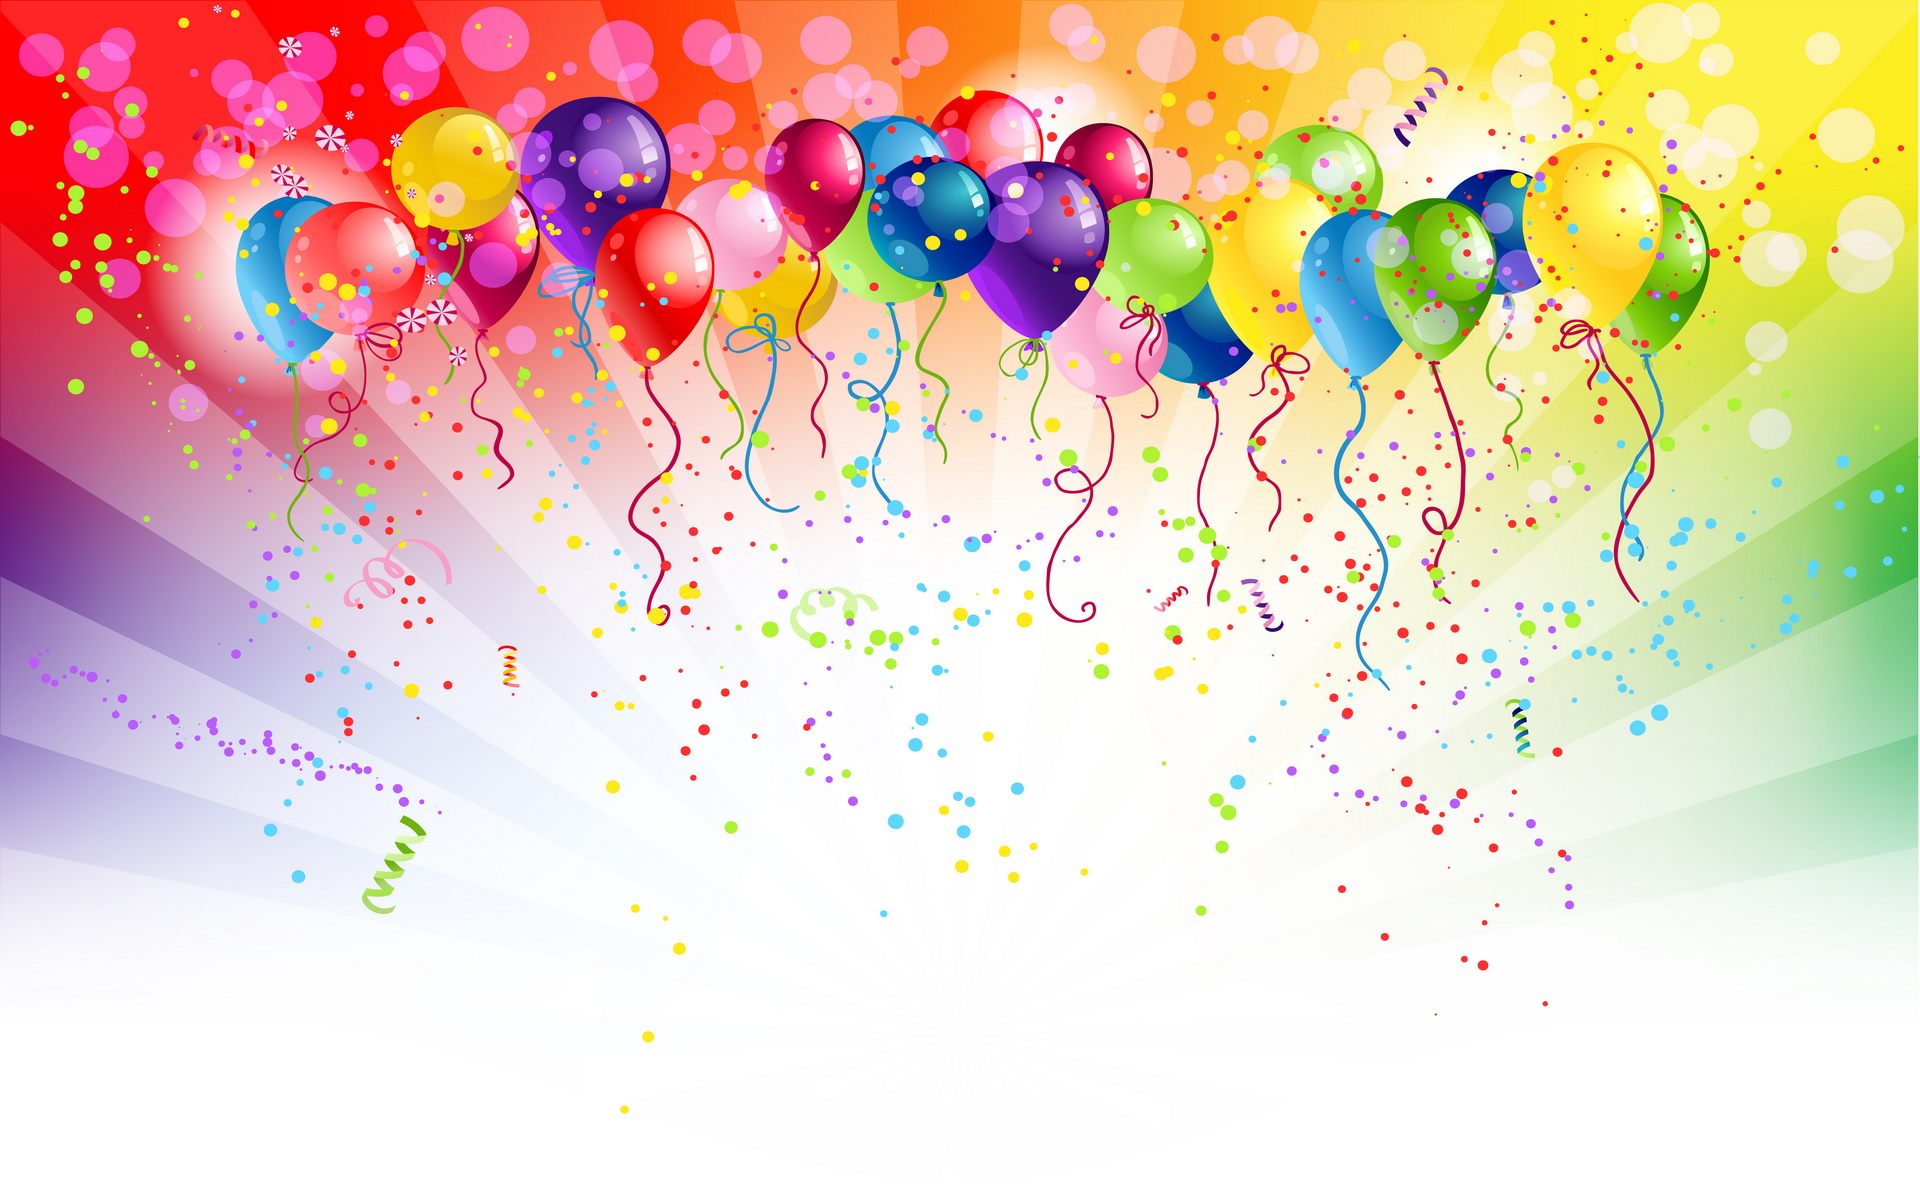 Hd wallpaper birthday - 20 2015 By Stephen Comments Off On Birthday Balloons Hd Wallpaper